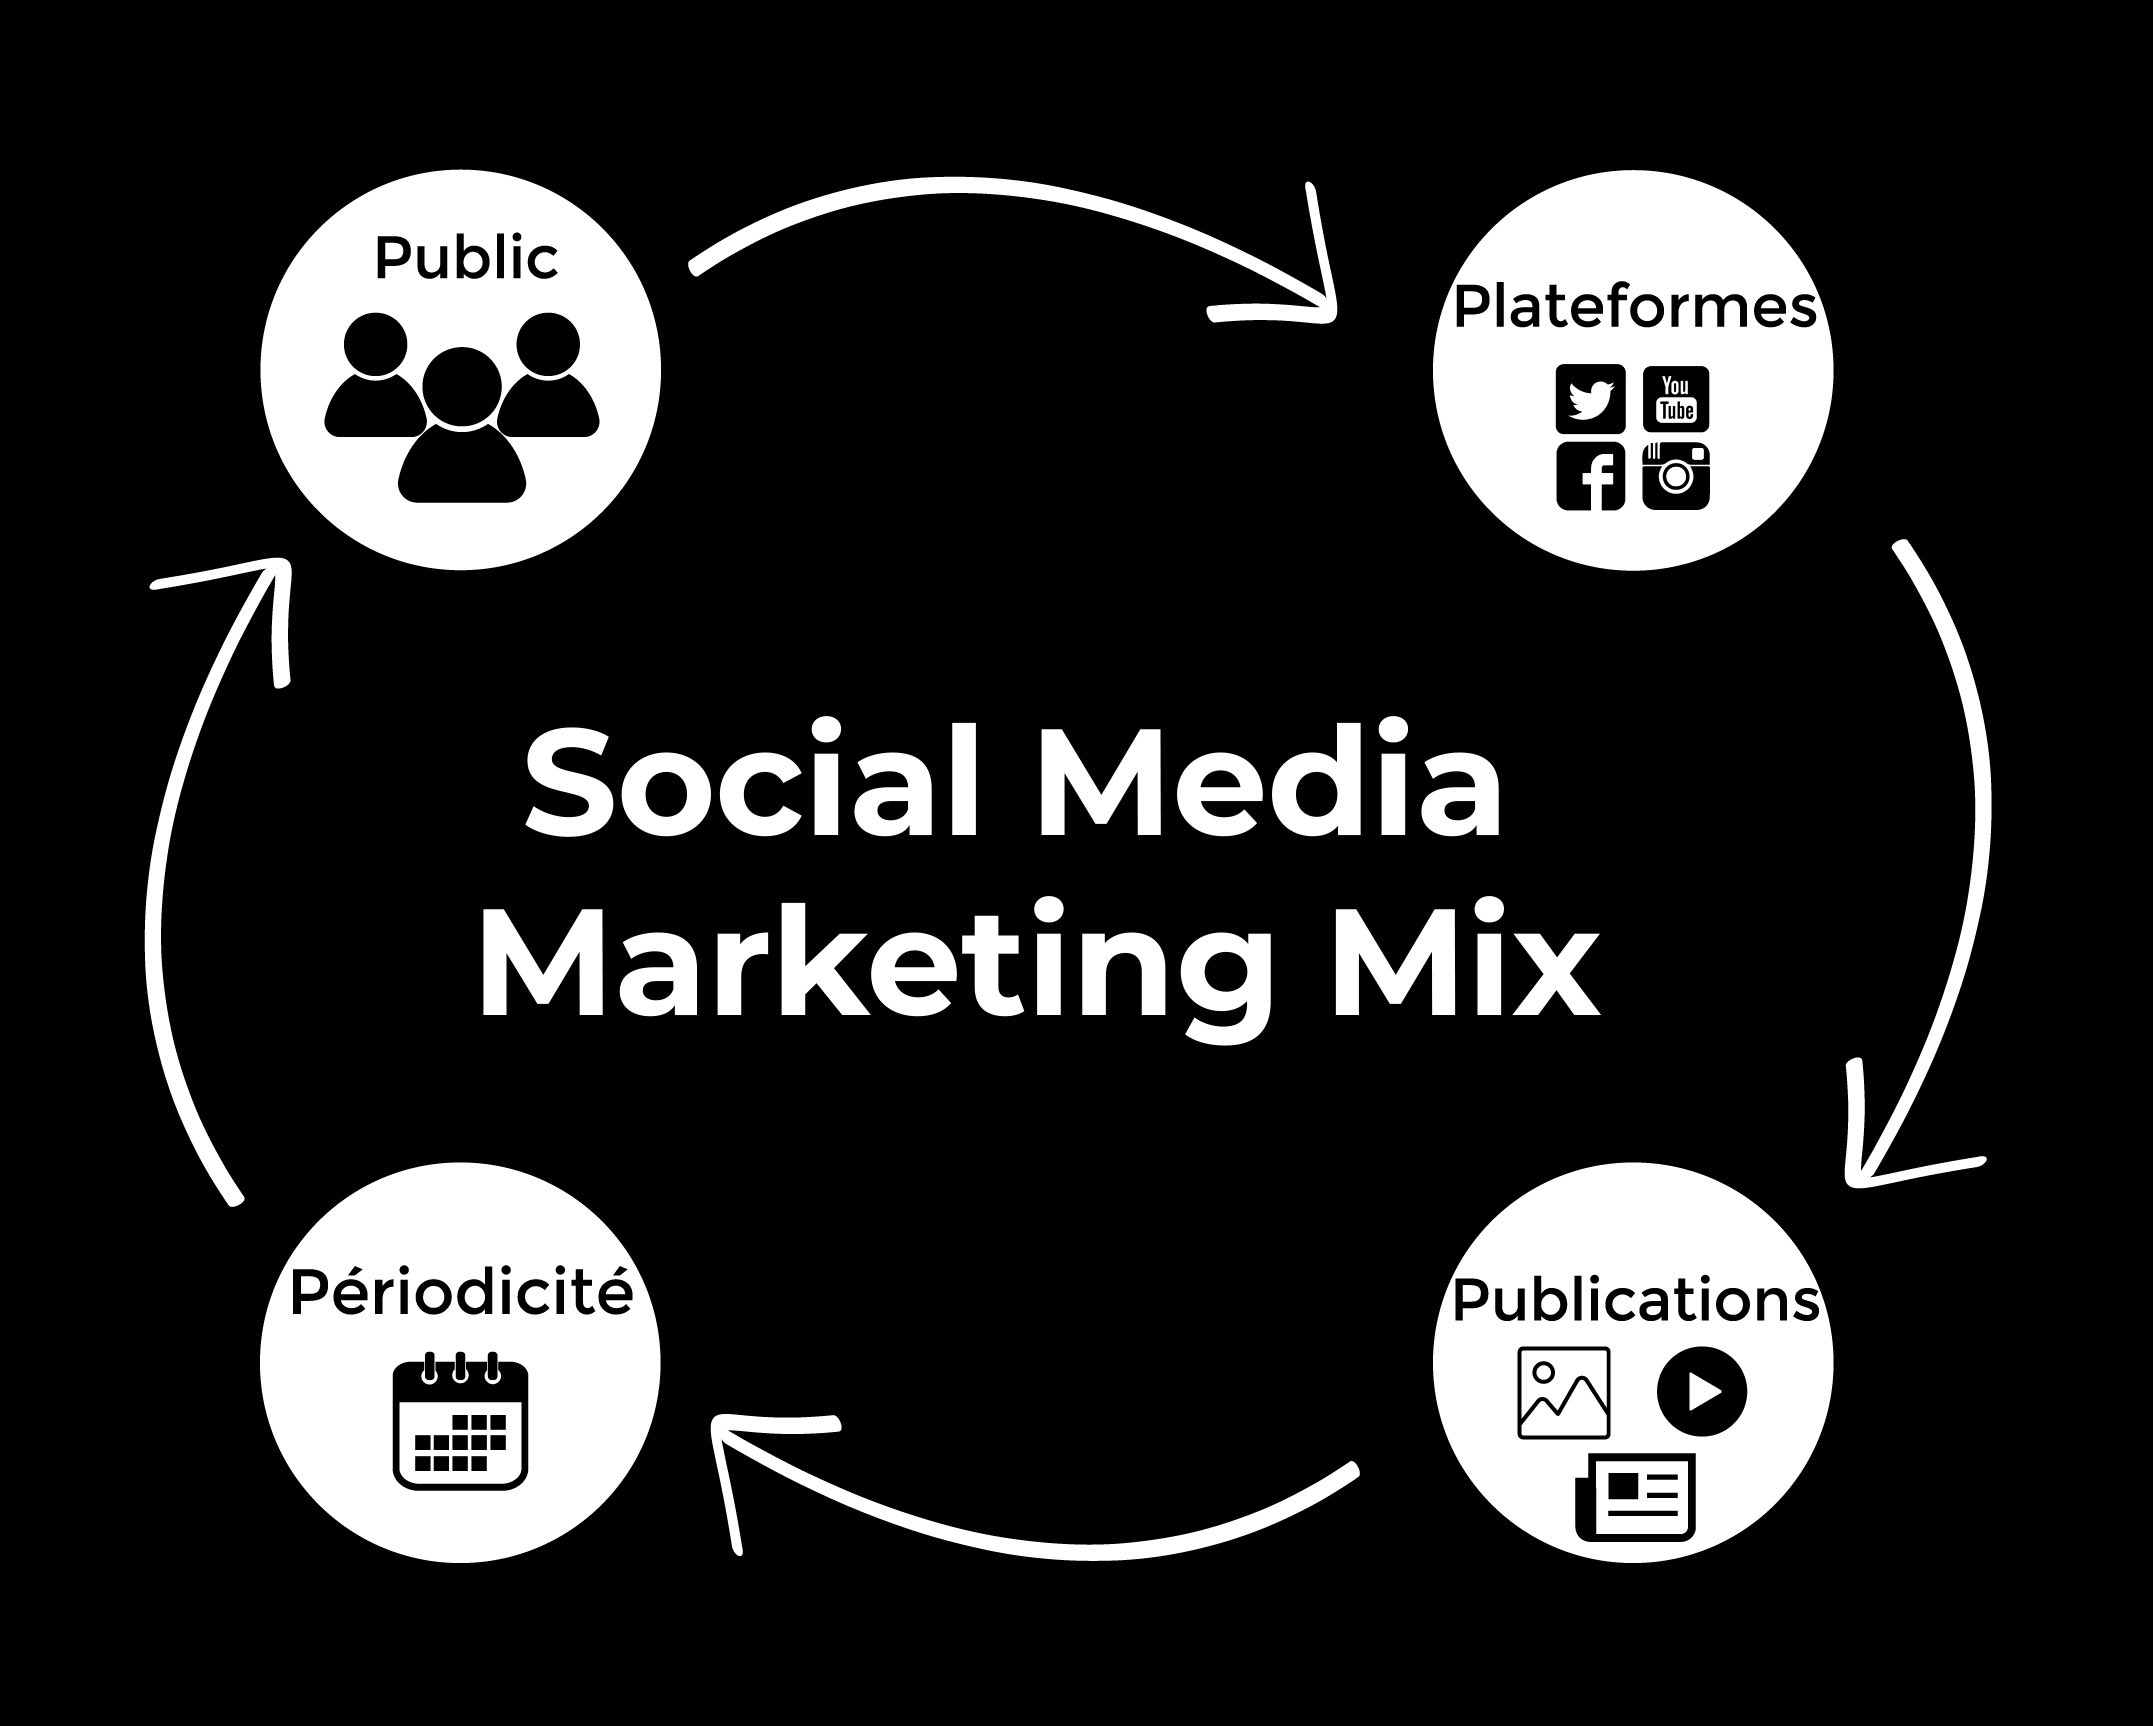 Image représentant la stratégie social media marketing mix